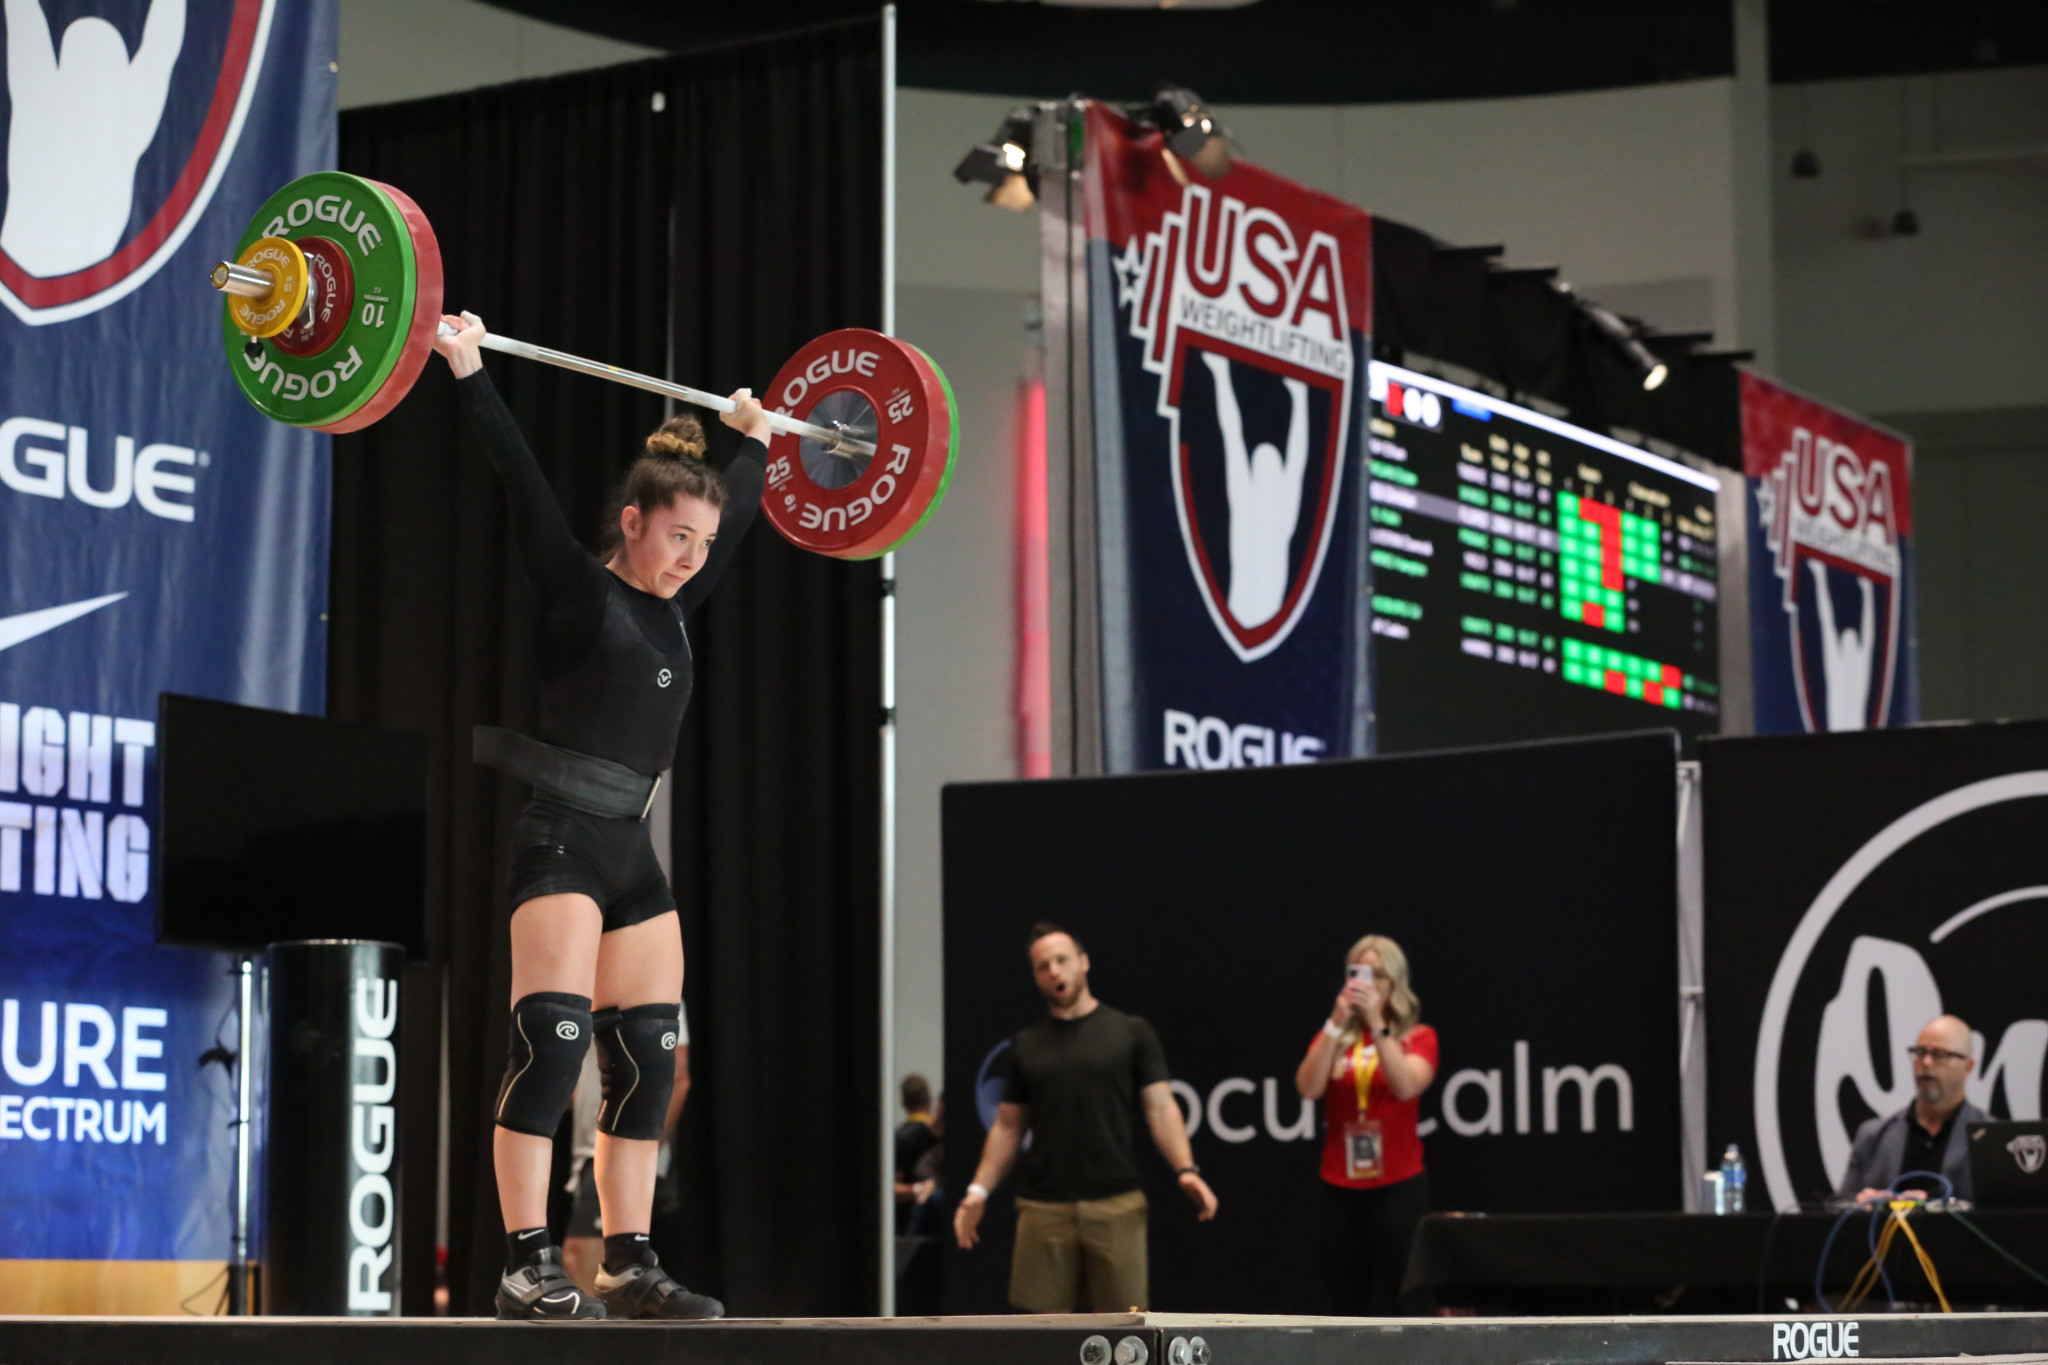 Katie Estep is part of the United States team for the IWF Youth World Championships, which at 20 is the largest of any participating nation ©USA Weightlifting